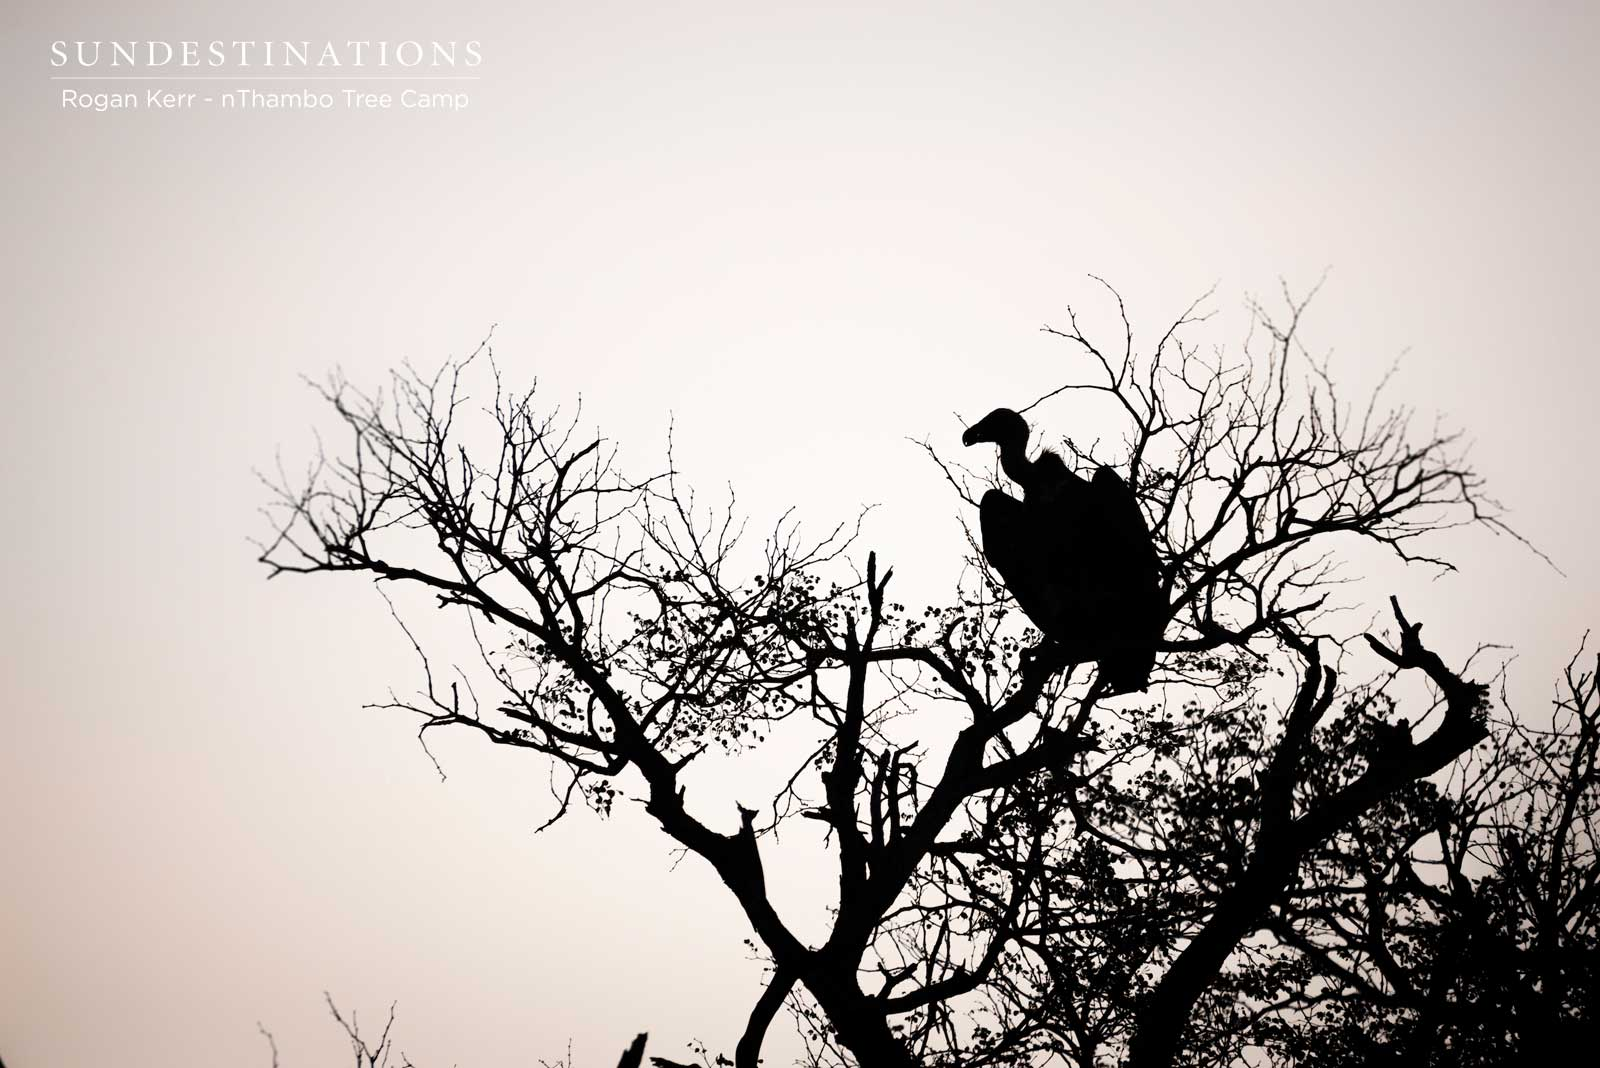 nThambo Vultures